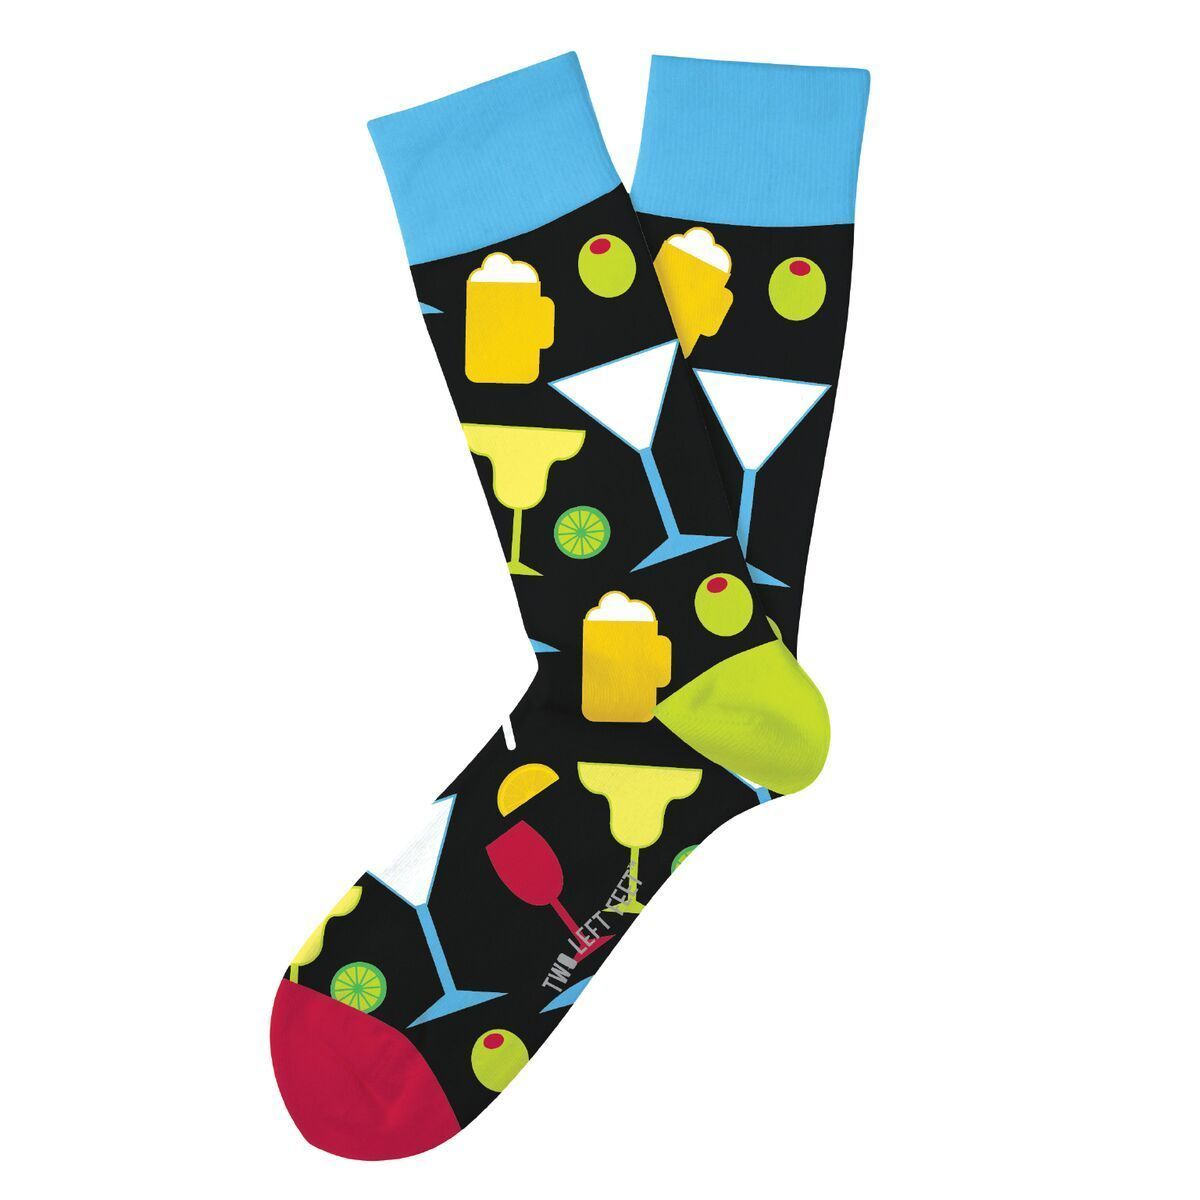 Happy Hour Fun Novelty Socks Two Left Feet Size Dress SOX Casual Beer Coctail